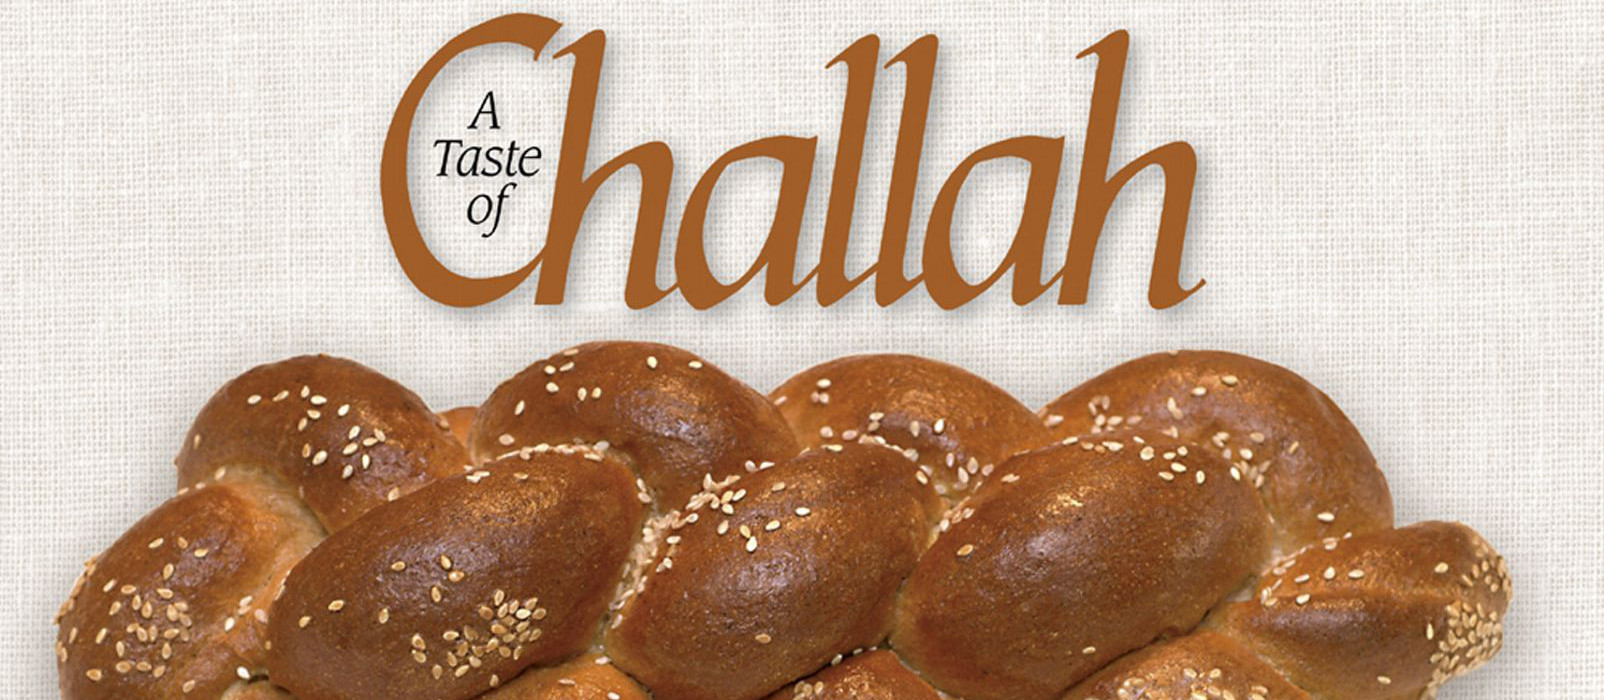 Taste of Challah front bookcover croppped 2